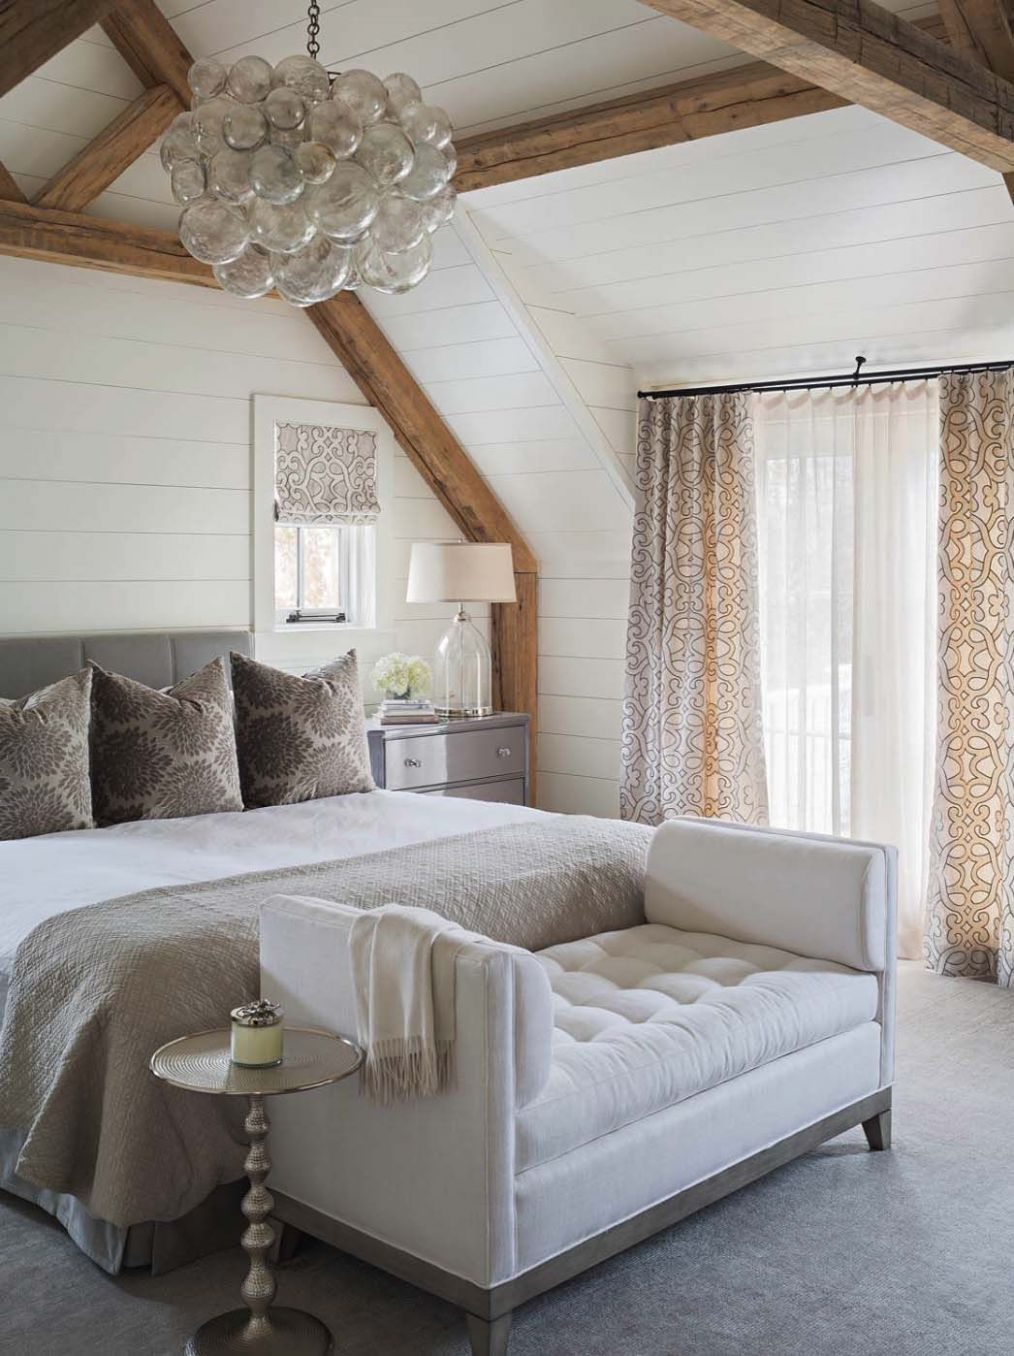 10 Stunning master bedroom retreats with vaulted ceilings ...